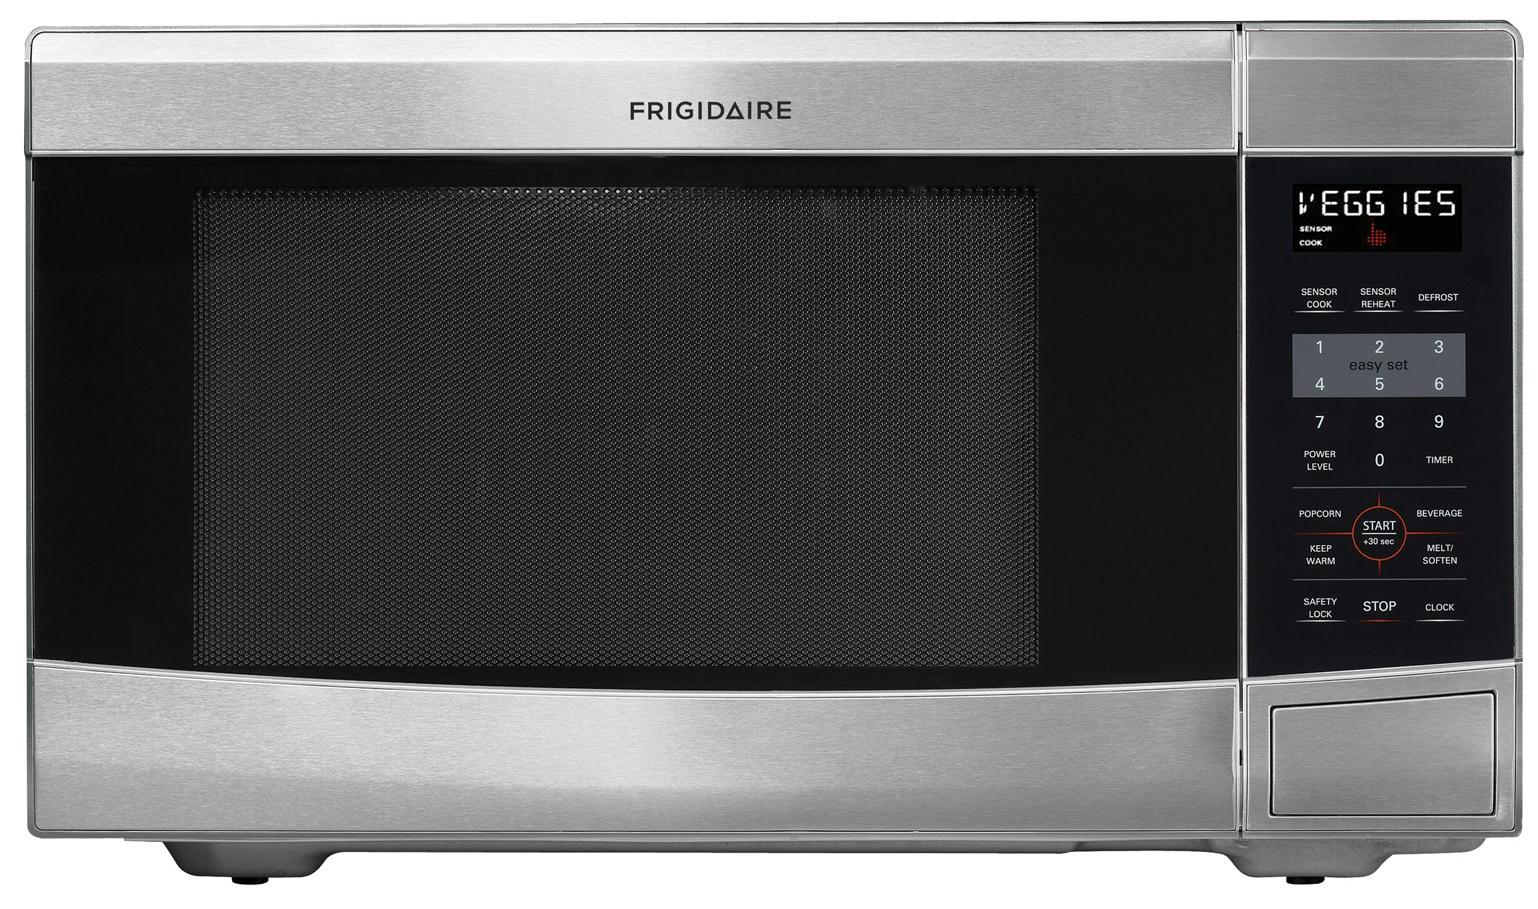 Frigidaire Microwaves 1.6 Cu. Ft. Countertop Microwave - Item Number: FFCE1638LS